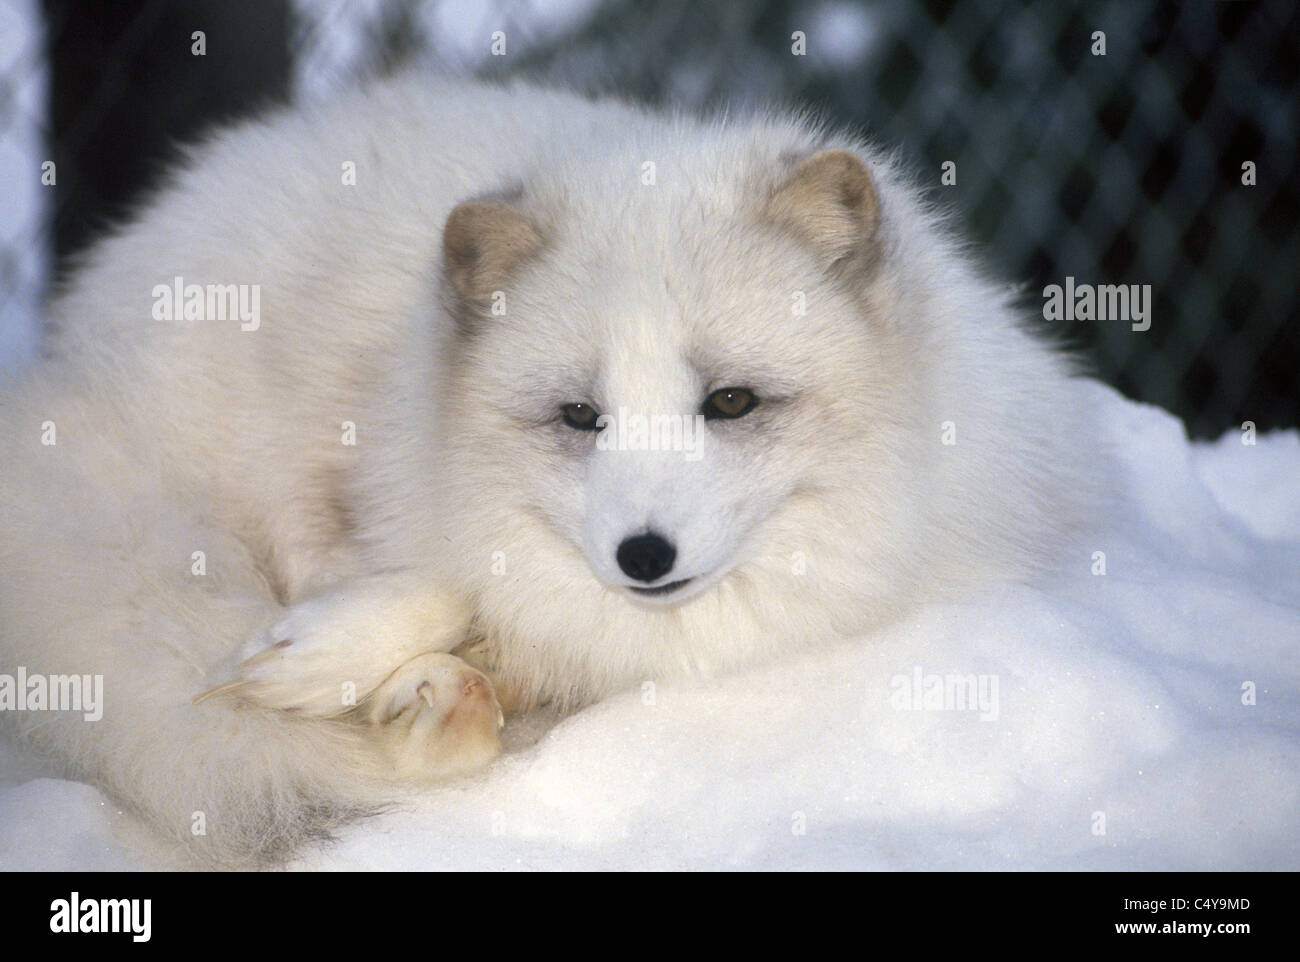 The Arctic Fox Changes Color With The Seasons And Its Fur Turns